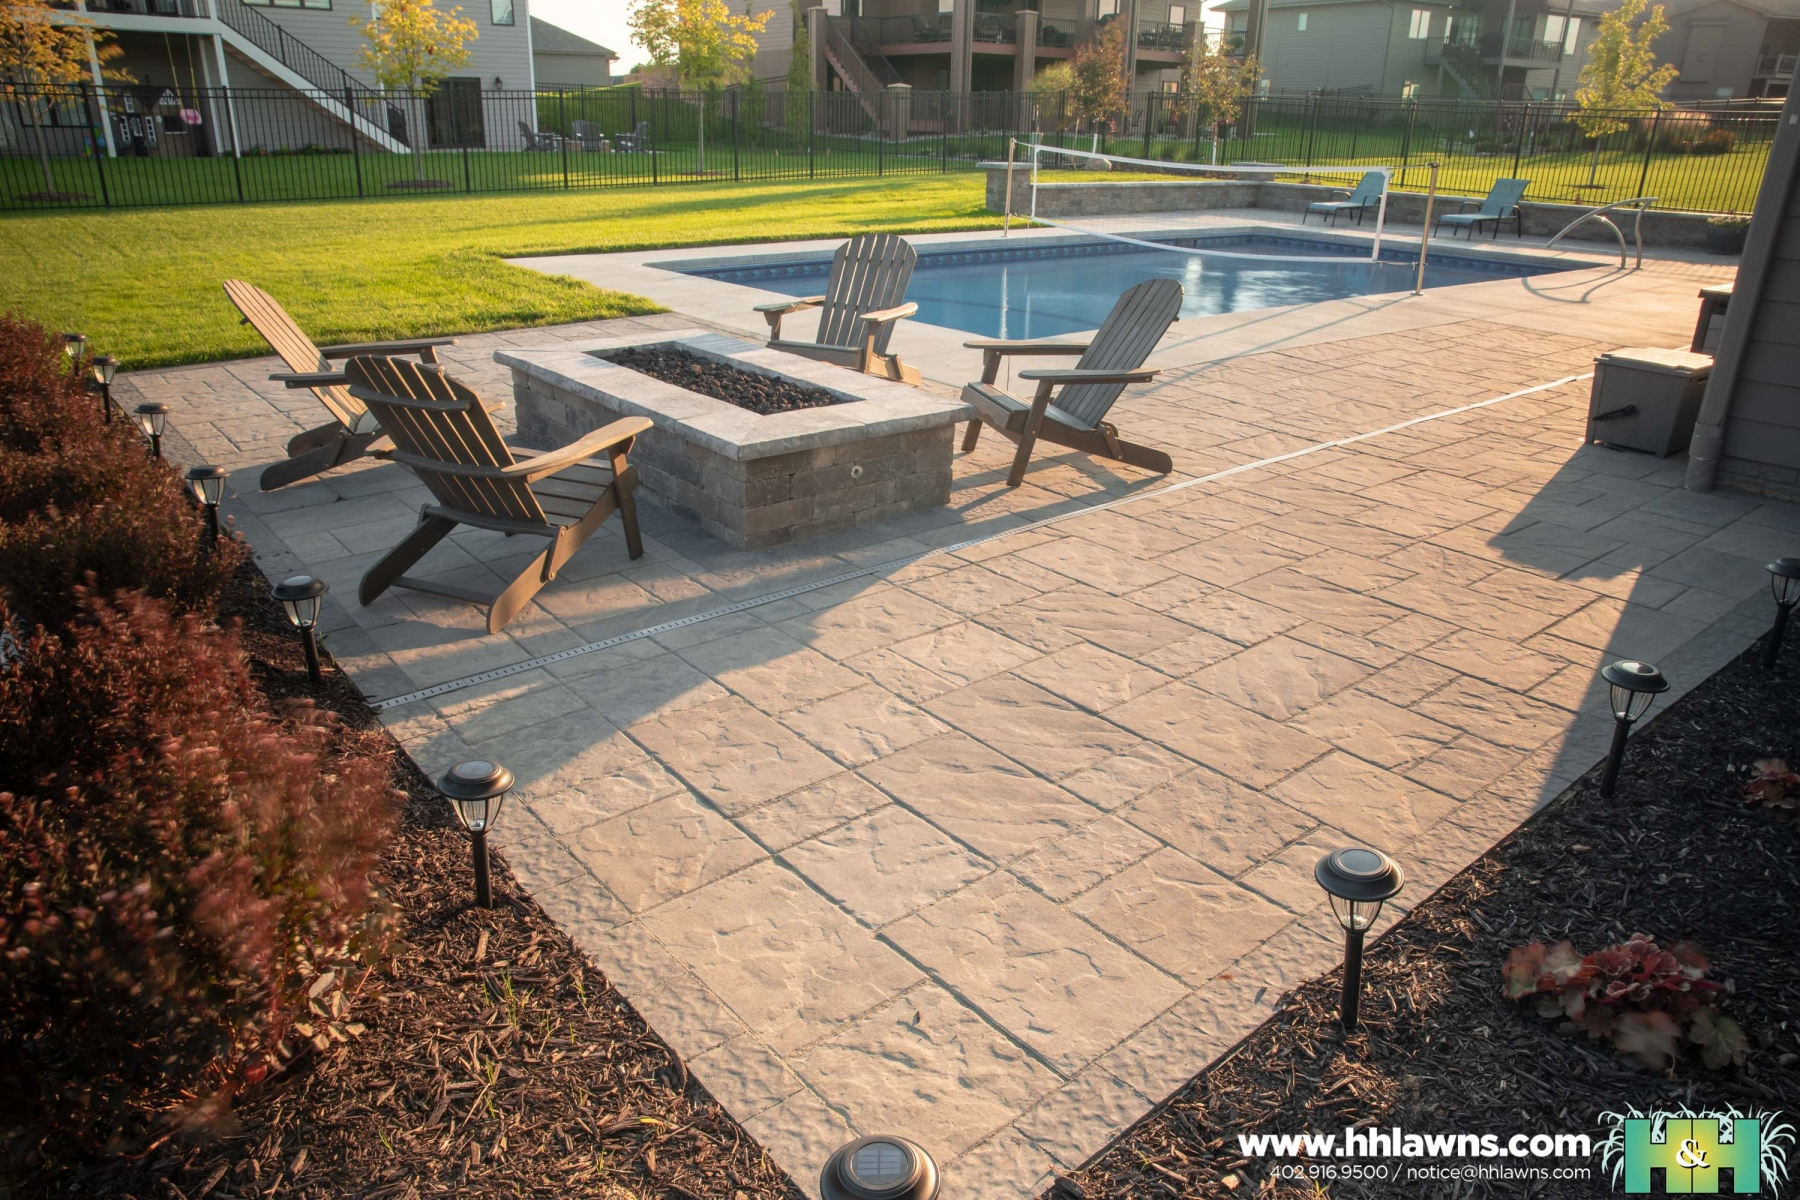 091019 Brandon Corder H&H Lawn and Landscape Omaha Landscape Company Created By // Nathan Olsen